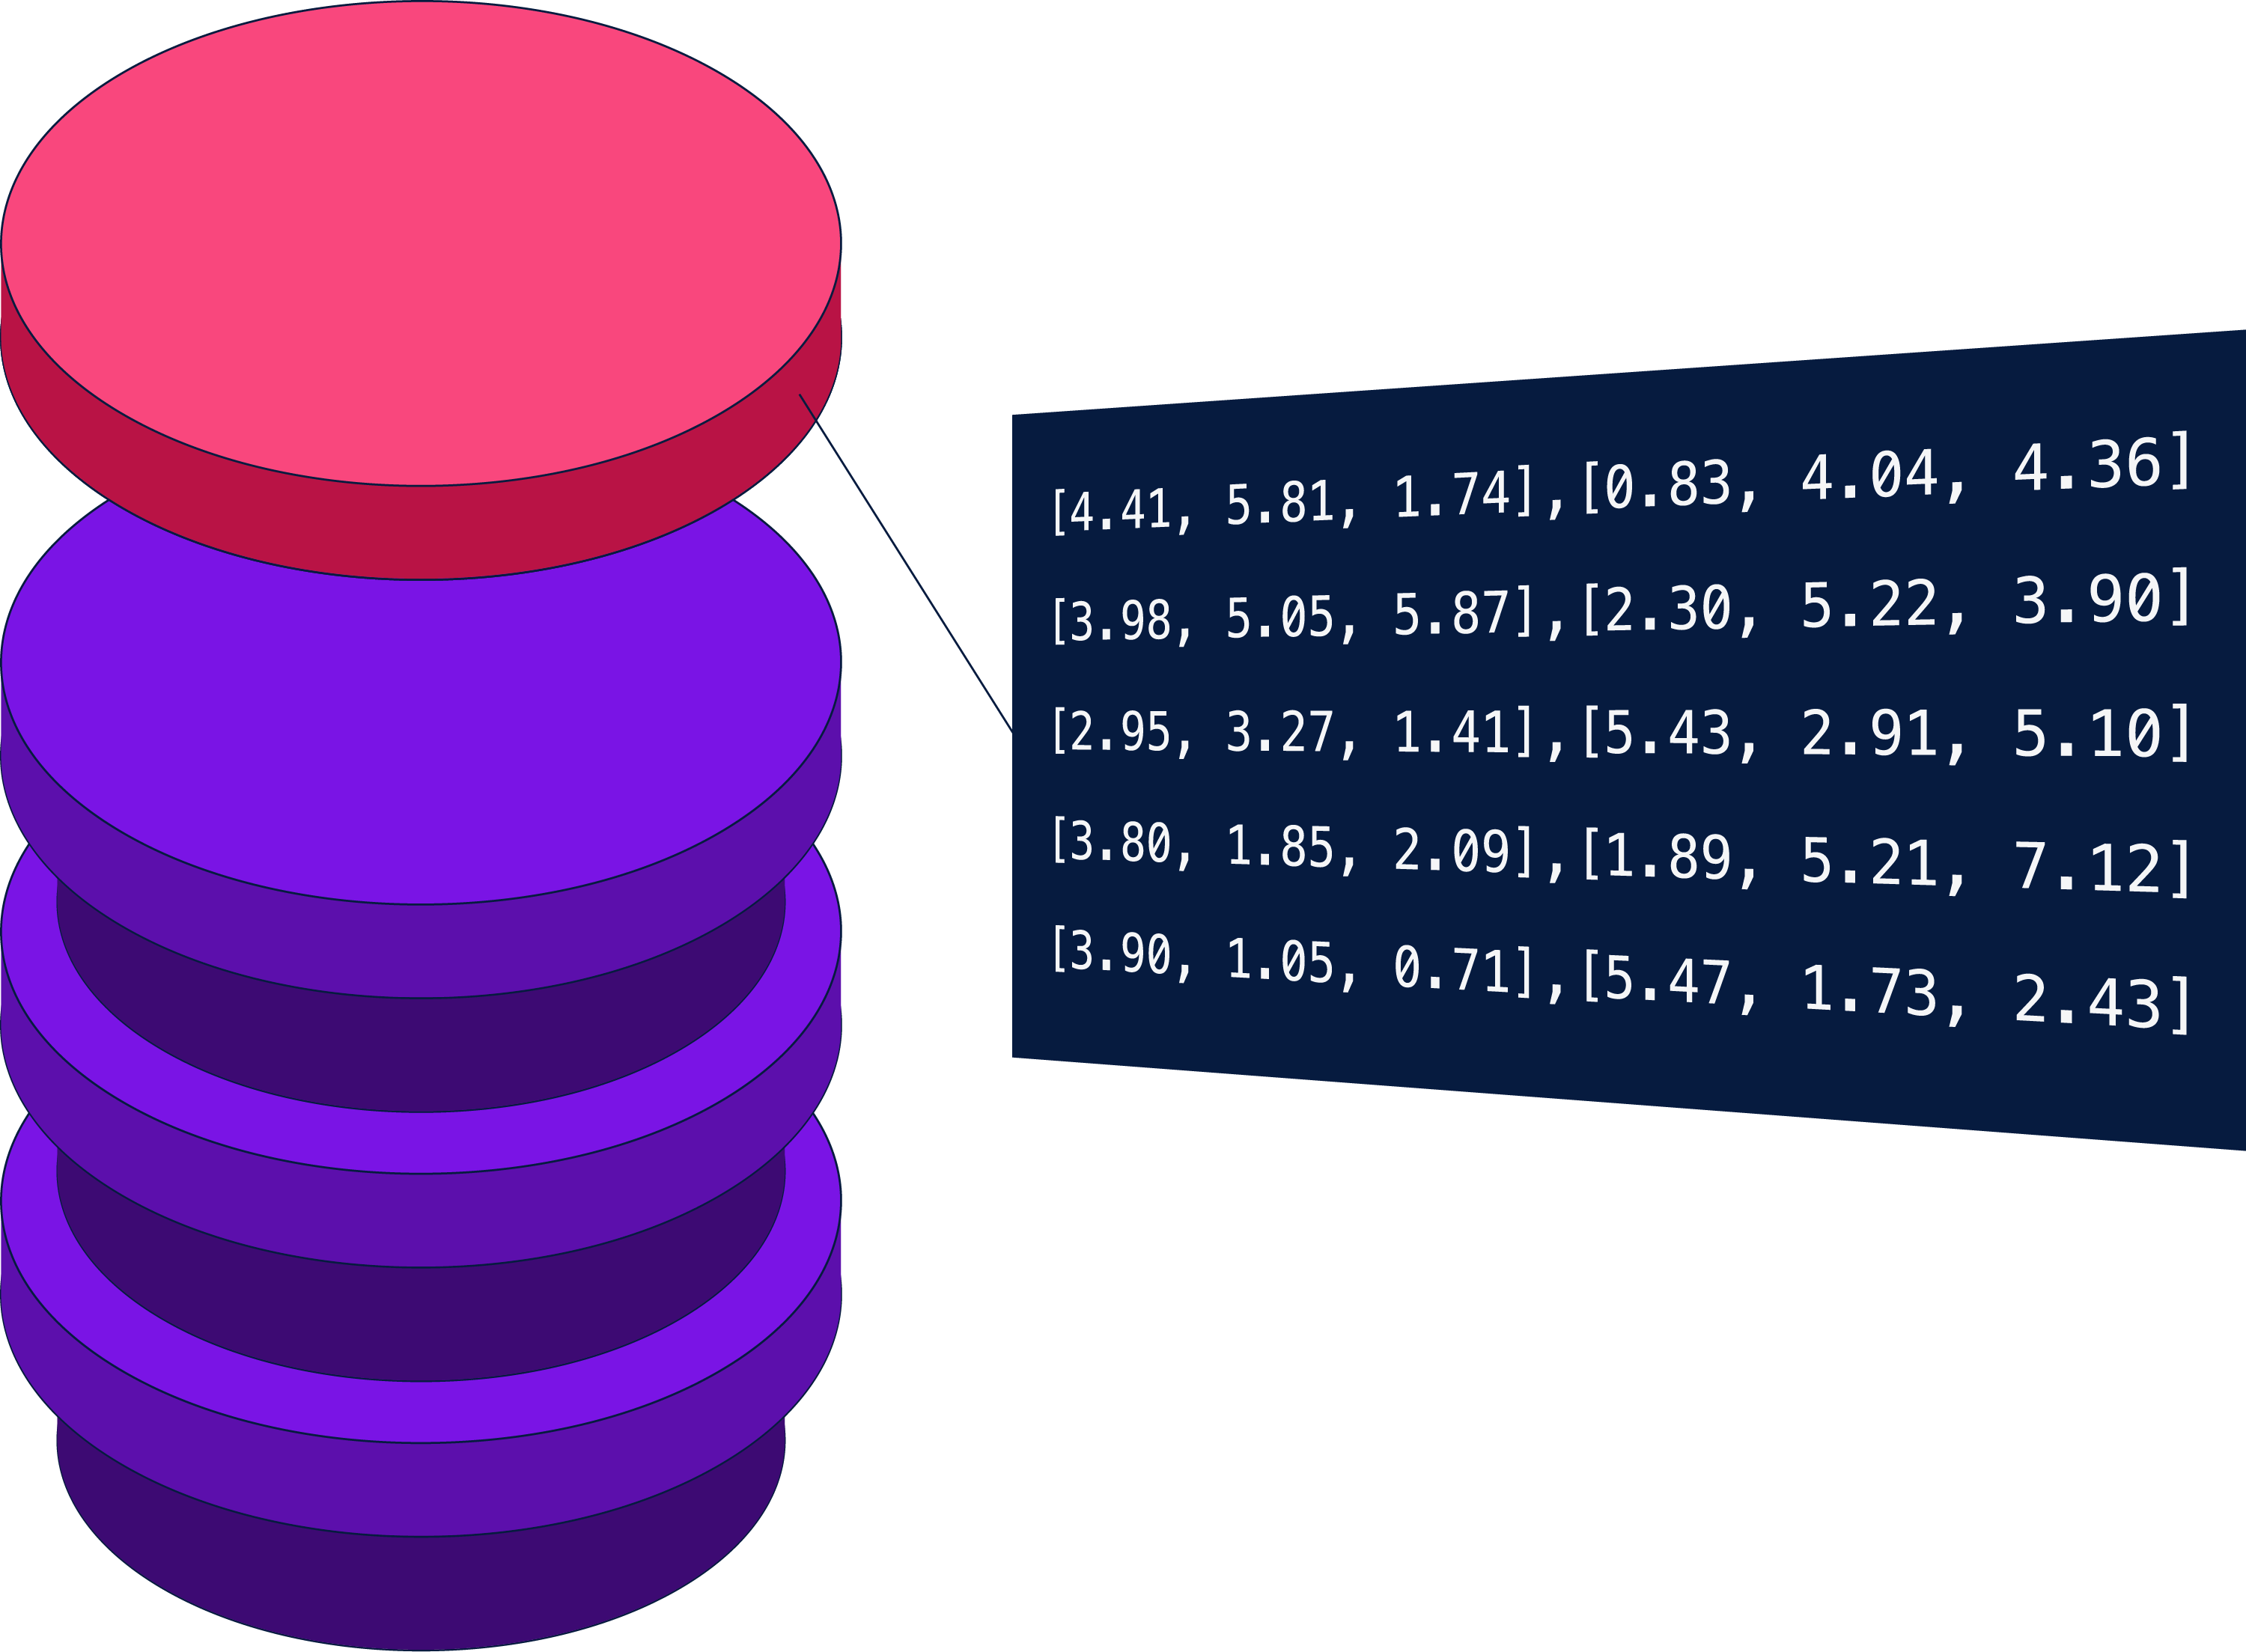 Embedding hub sits on a stack representing infrastructure